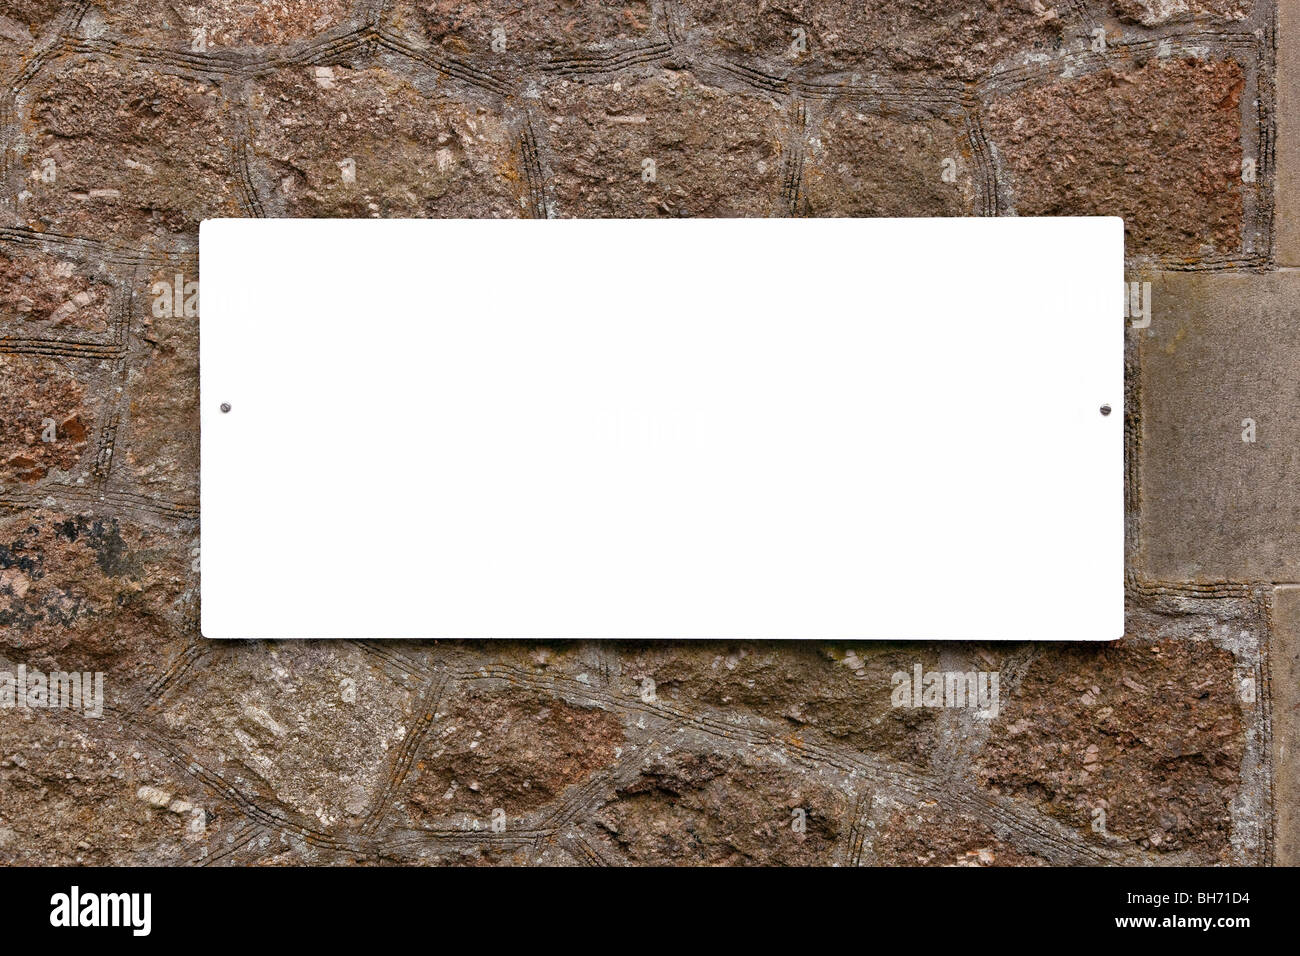 Blank white sign on an old stone wall, add your own message. - Stock Image